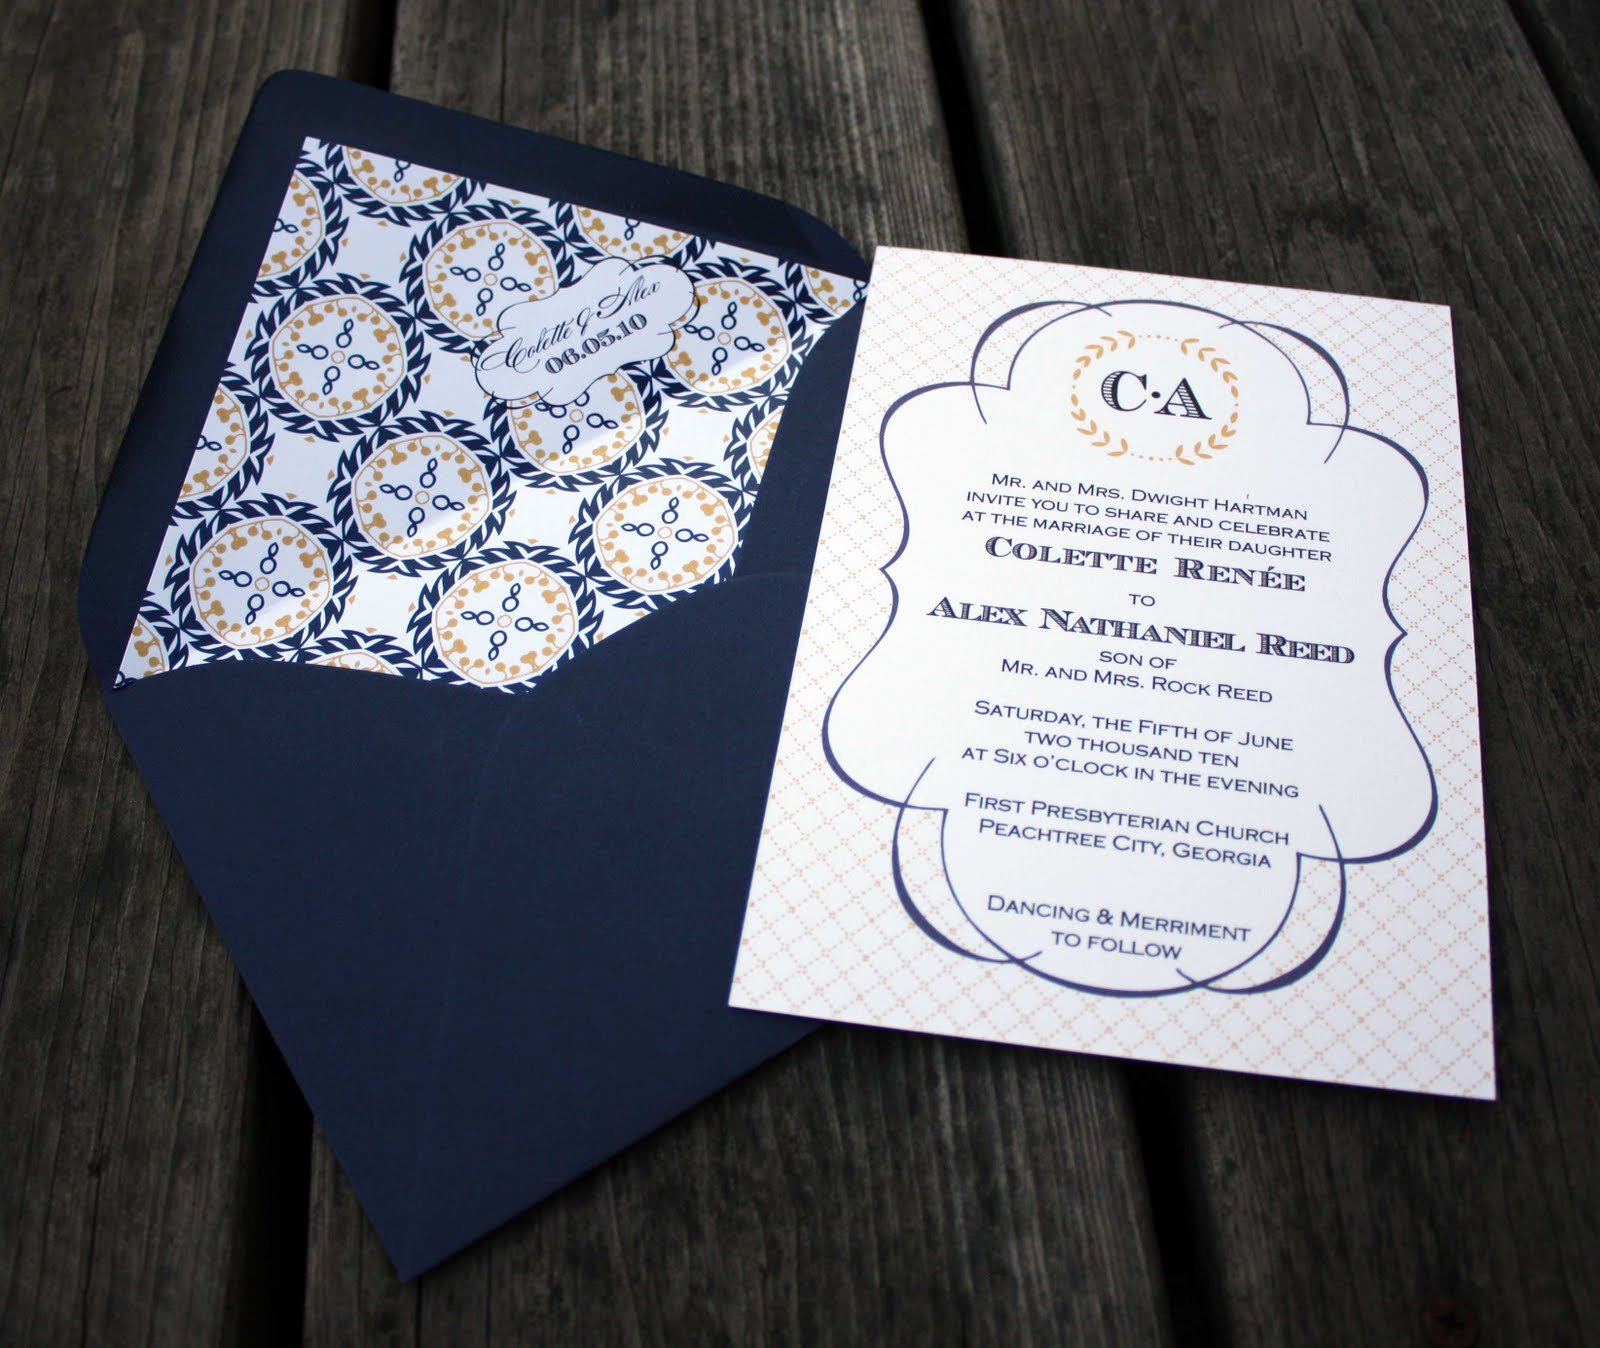 Madeline Wedding Invitations by Fourth & Folded - The Sweetest Occasion